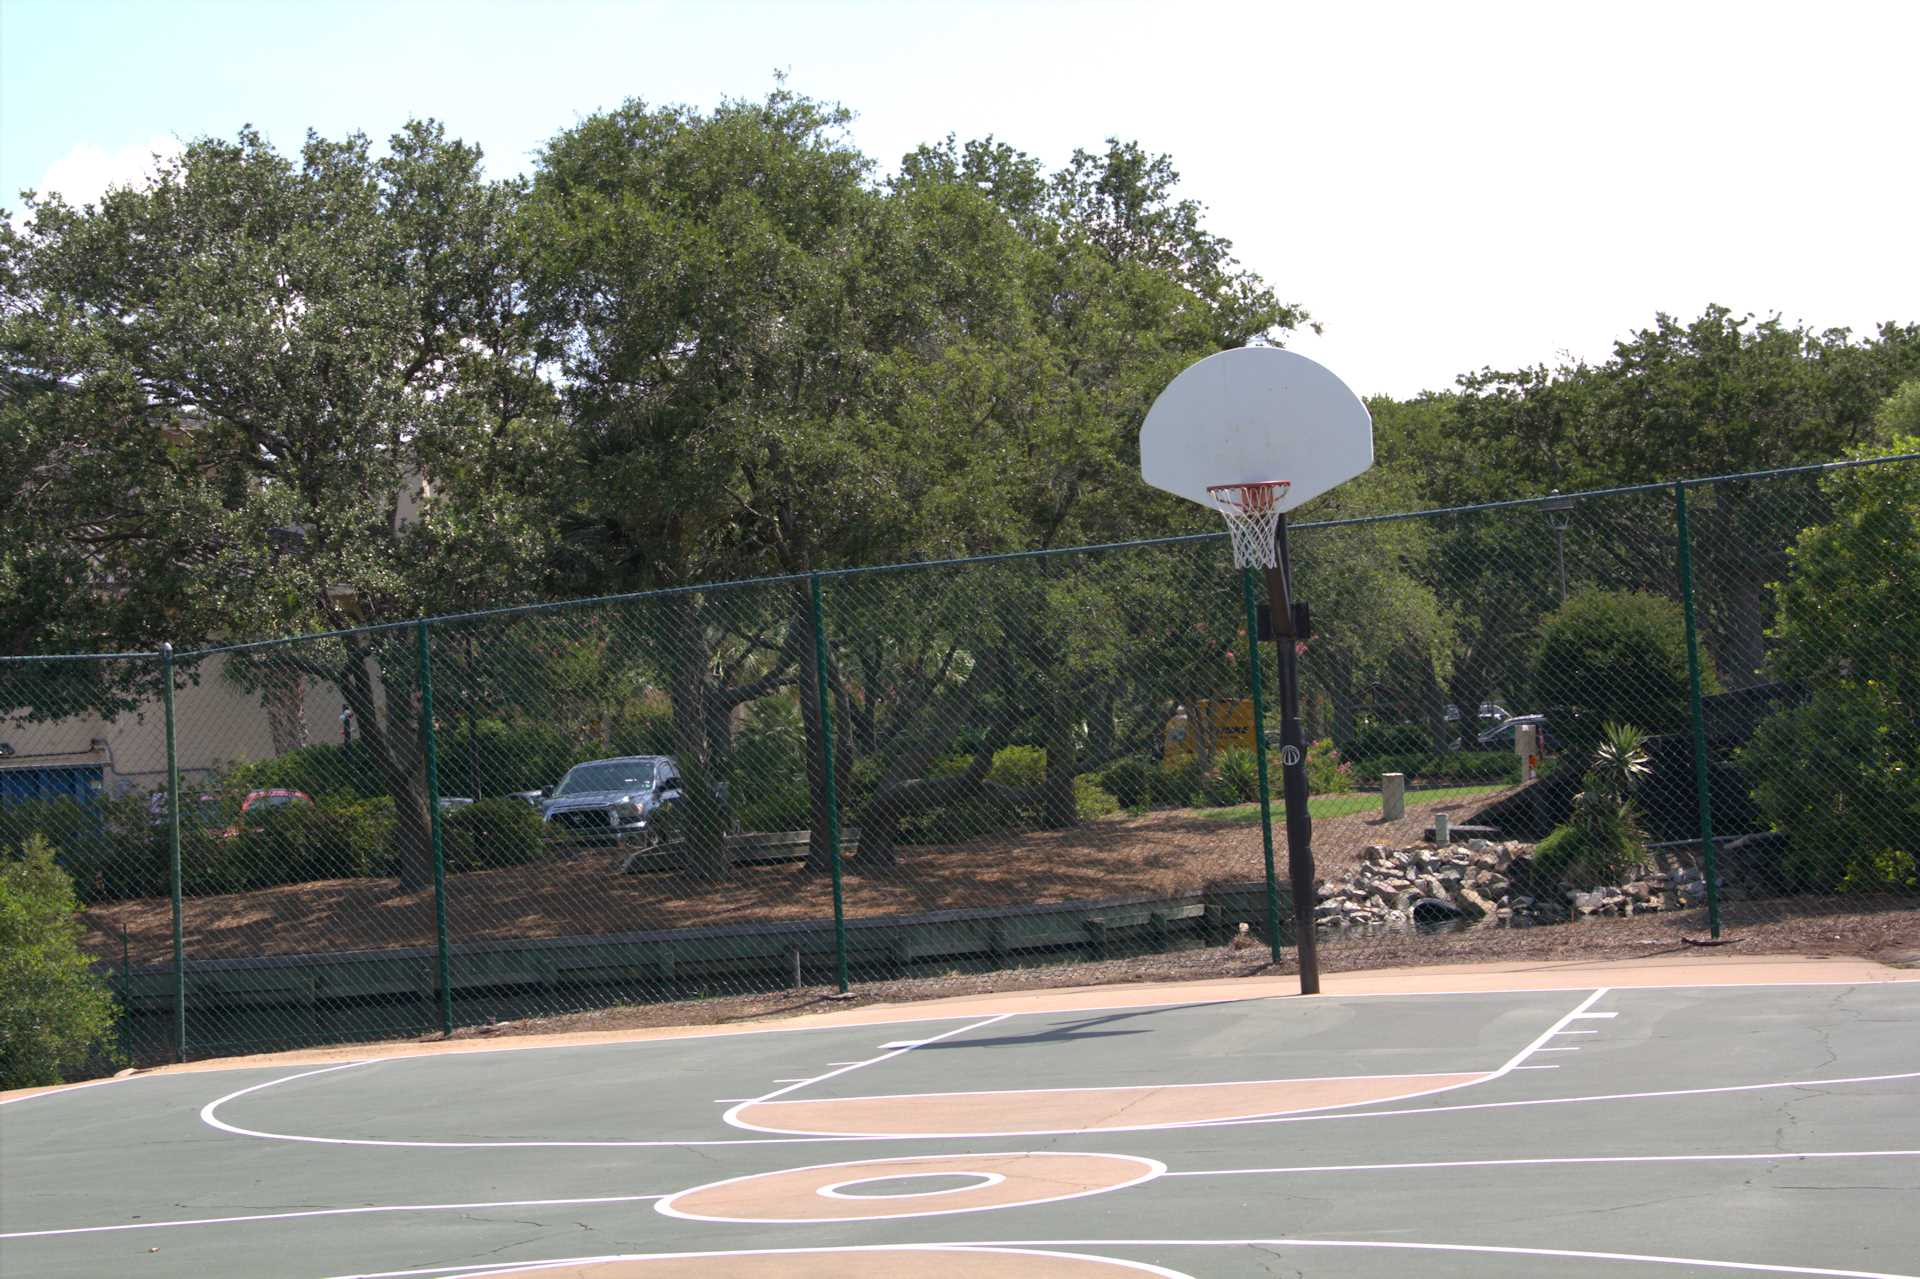 There is a basket ball court near the exercise room